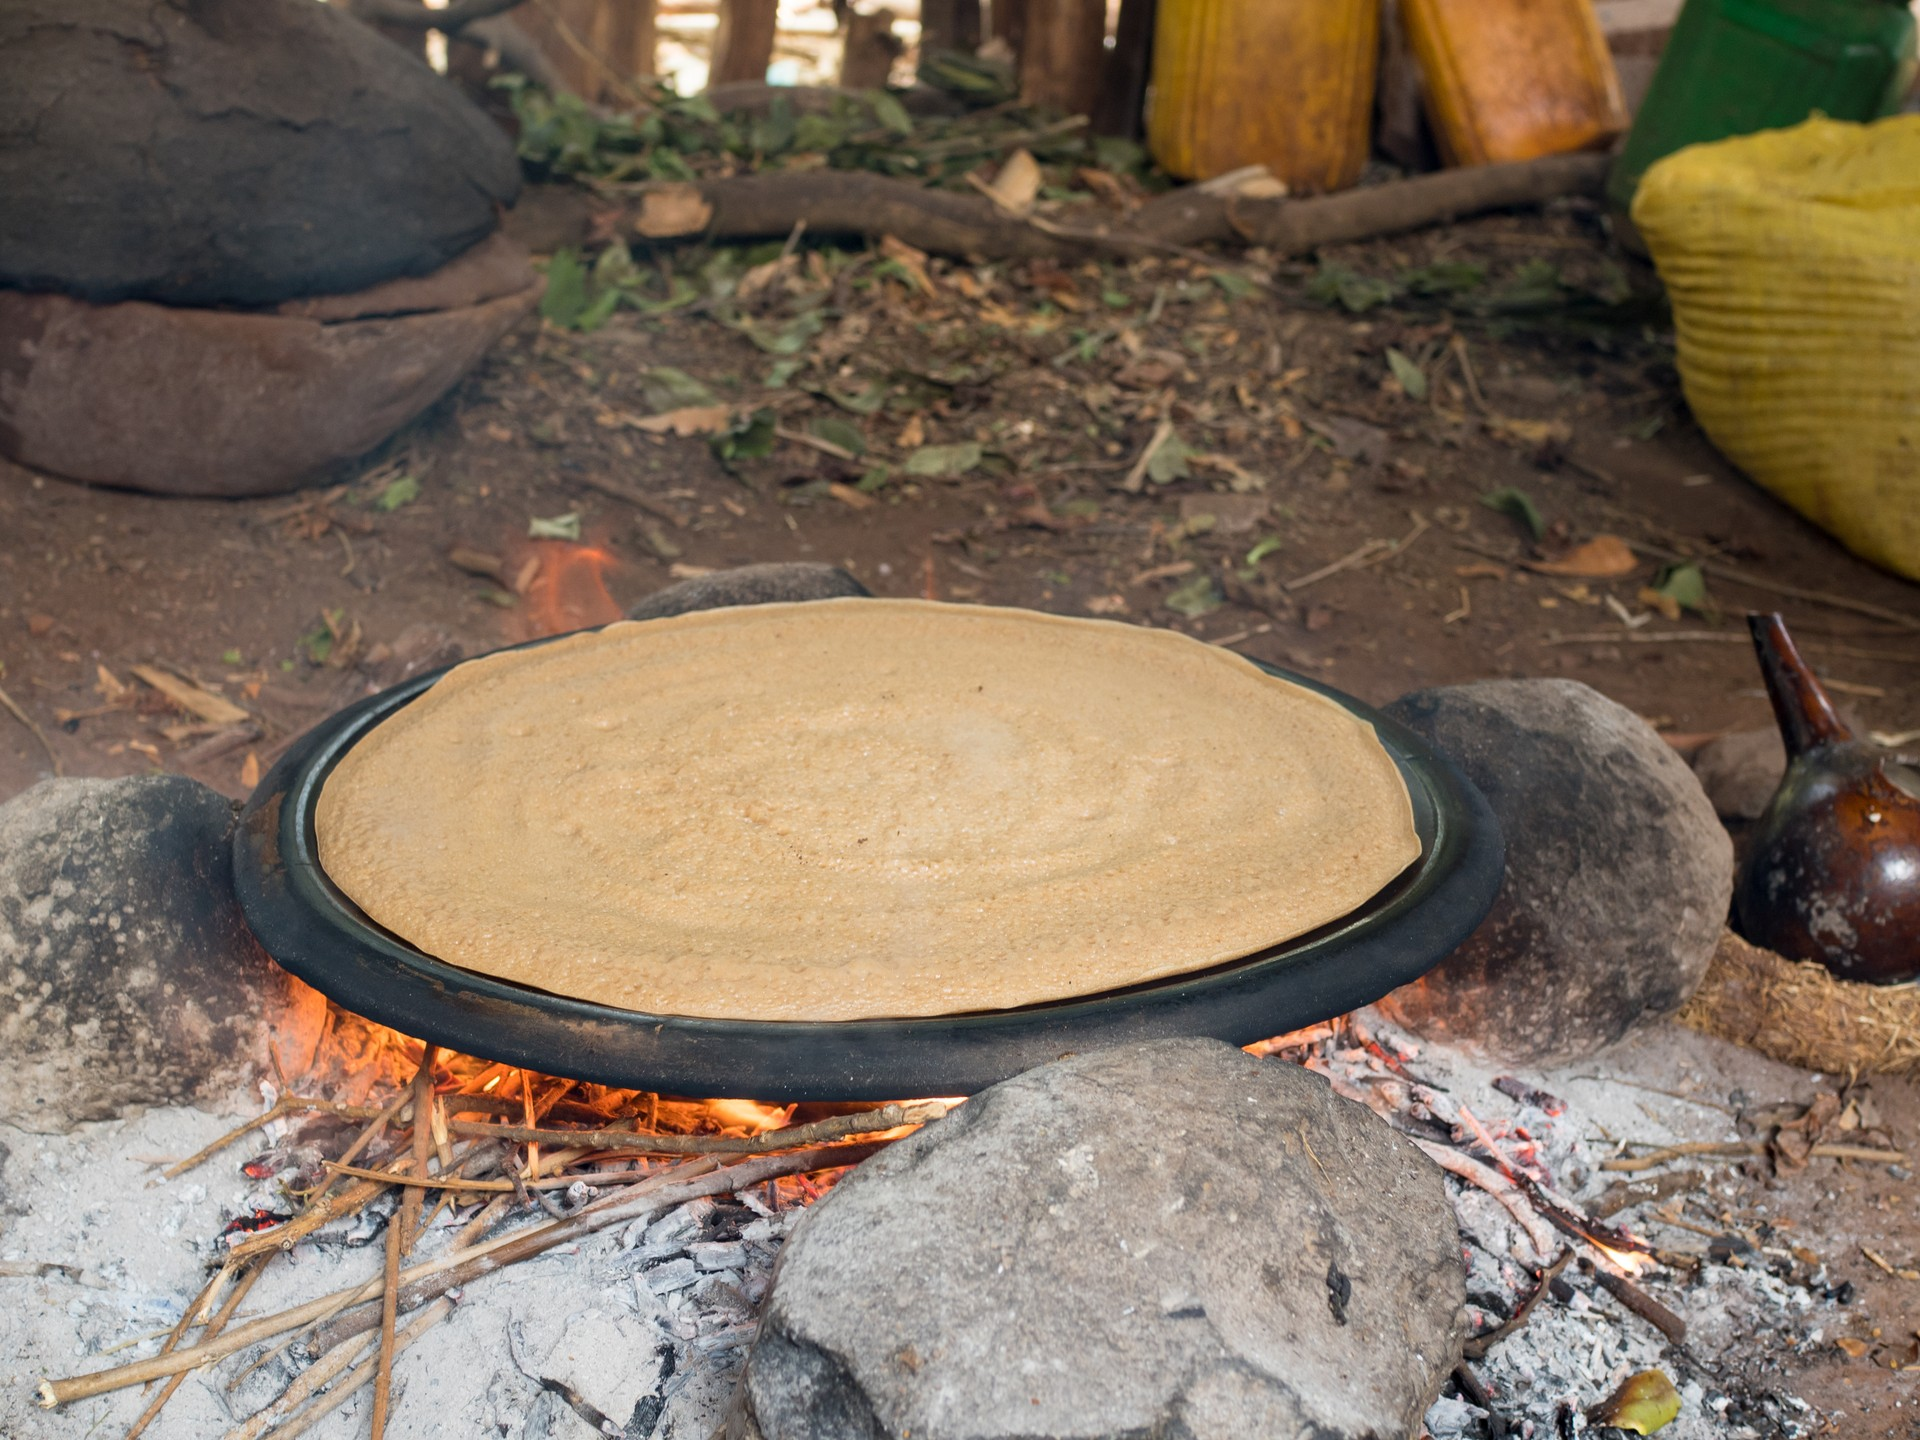 Injera flatbread being cooked in Ethiopia